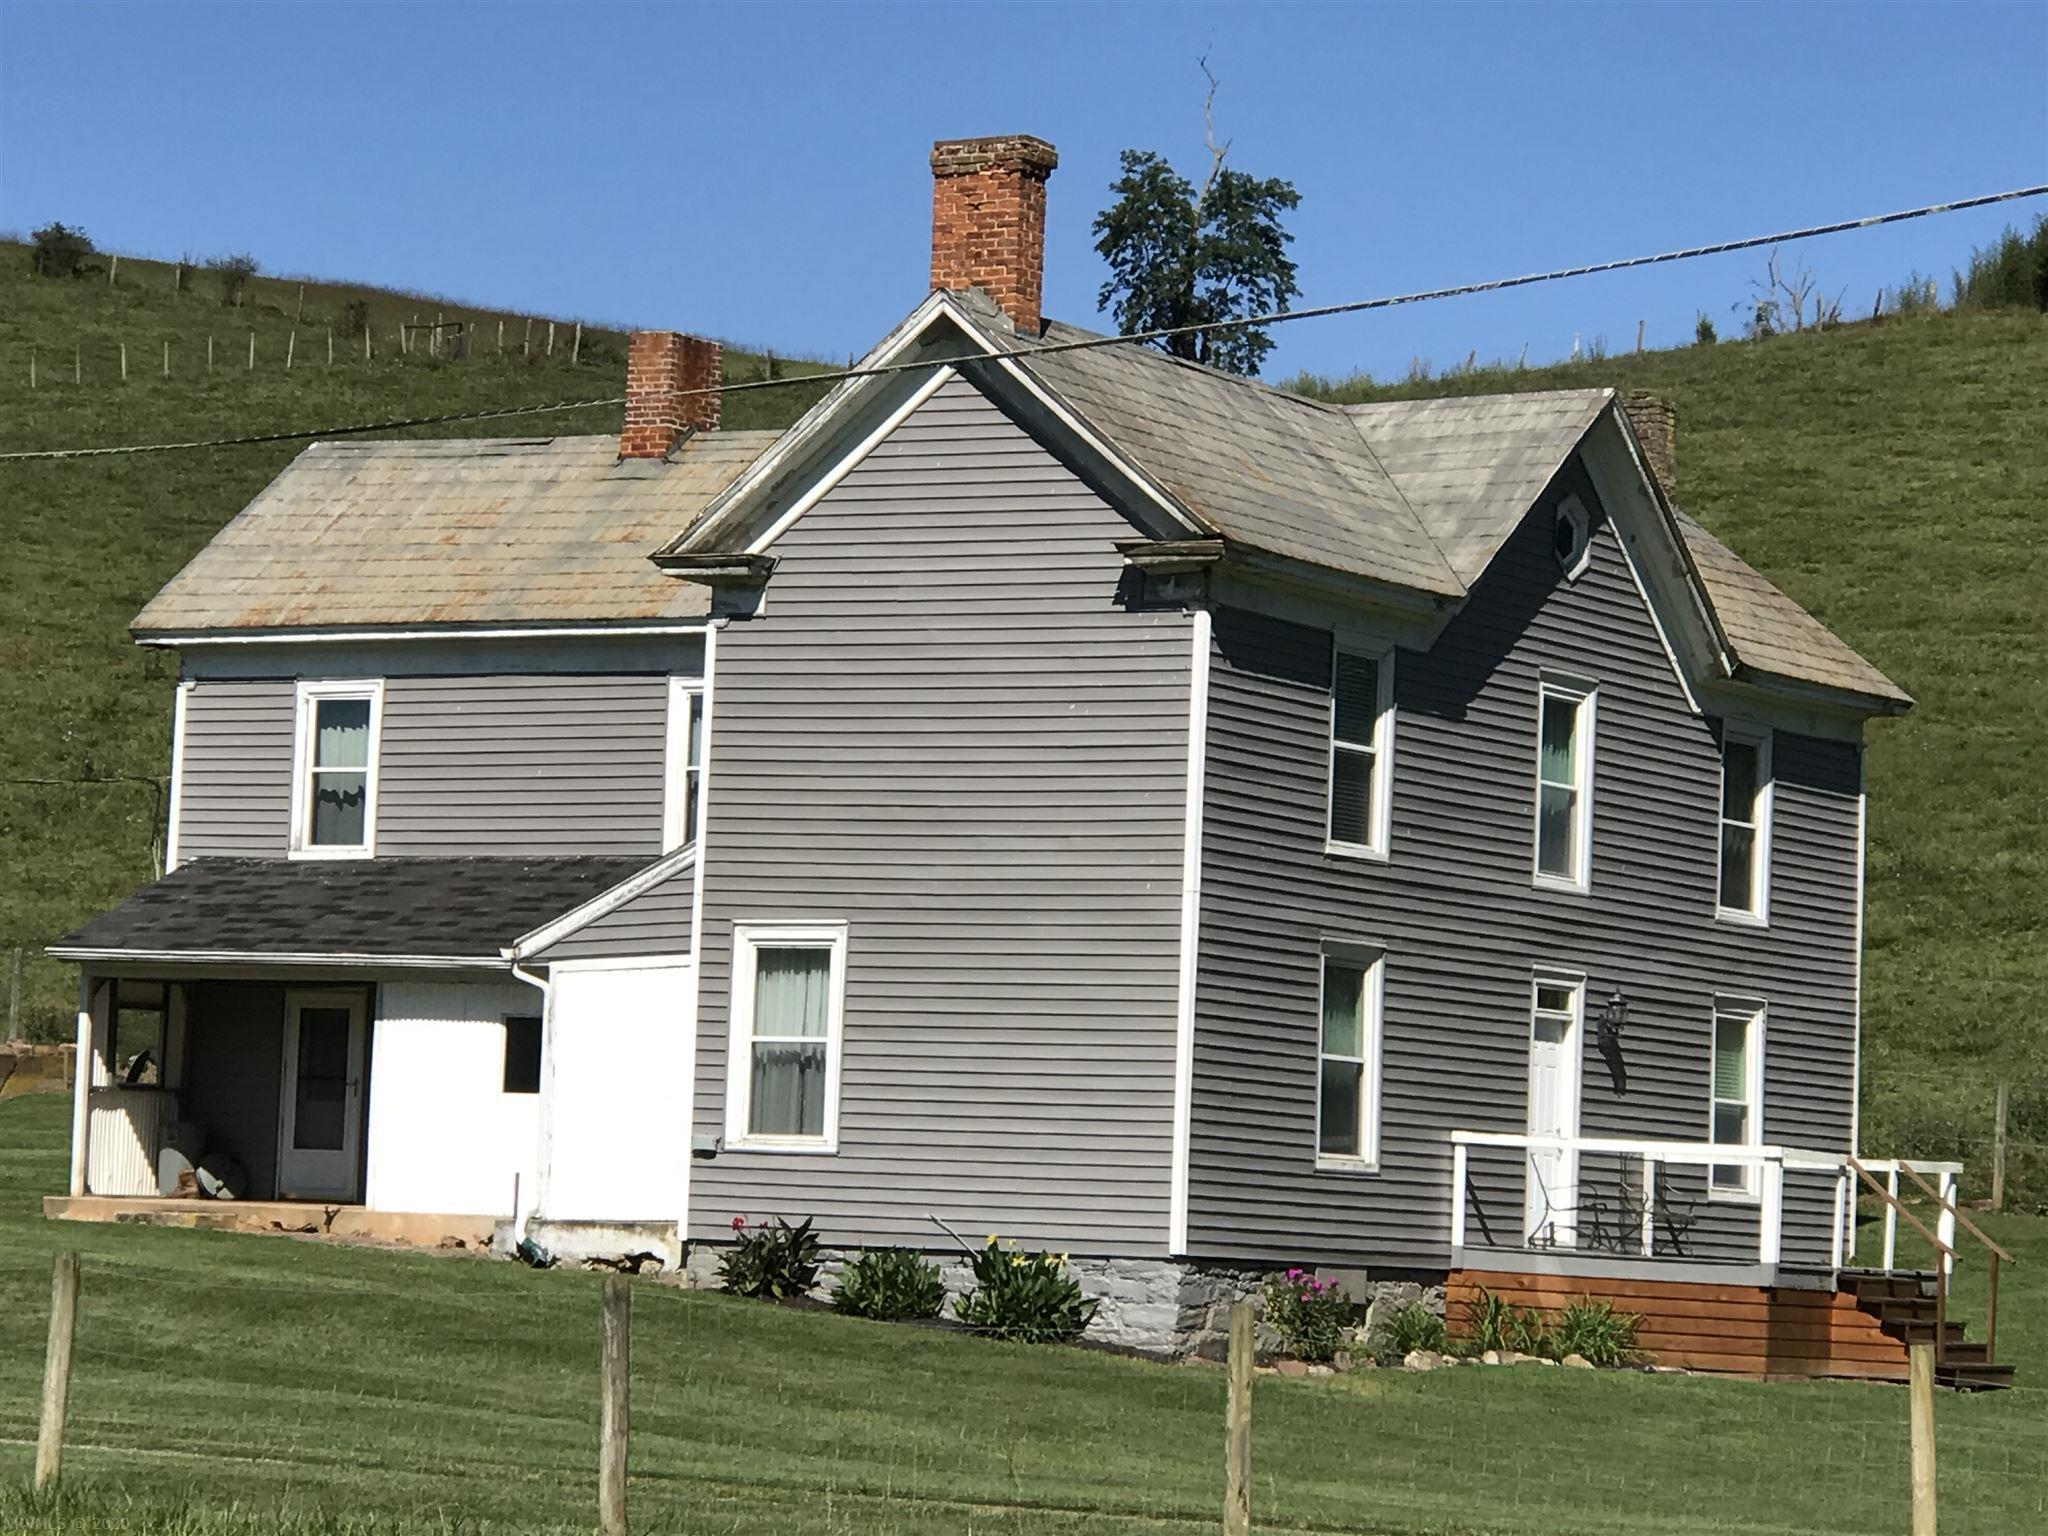 271  Crigger,  Rural Retreat, VA